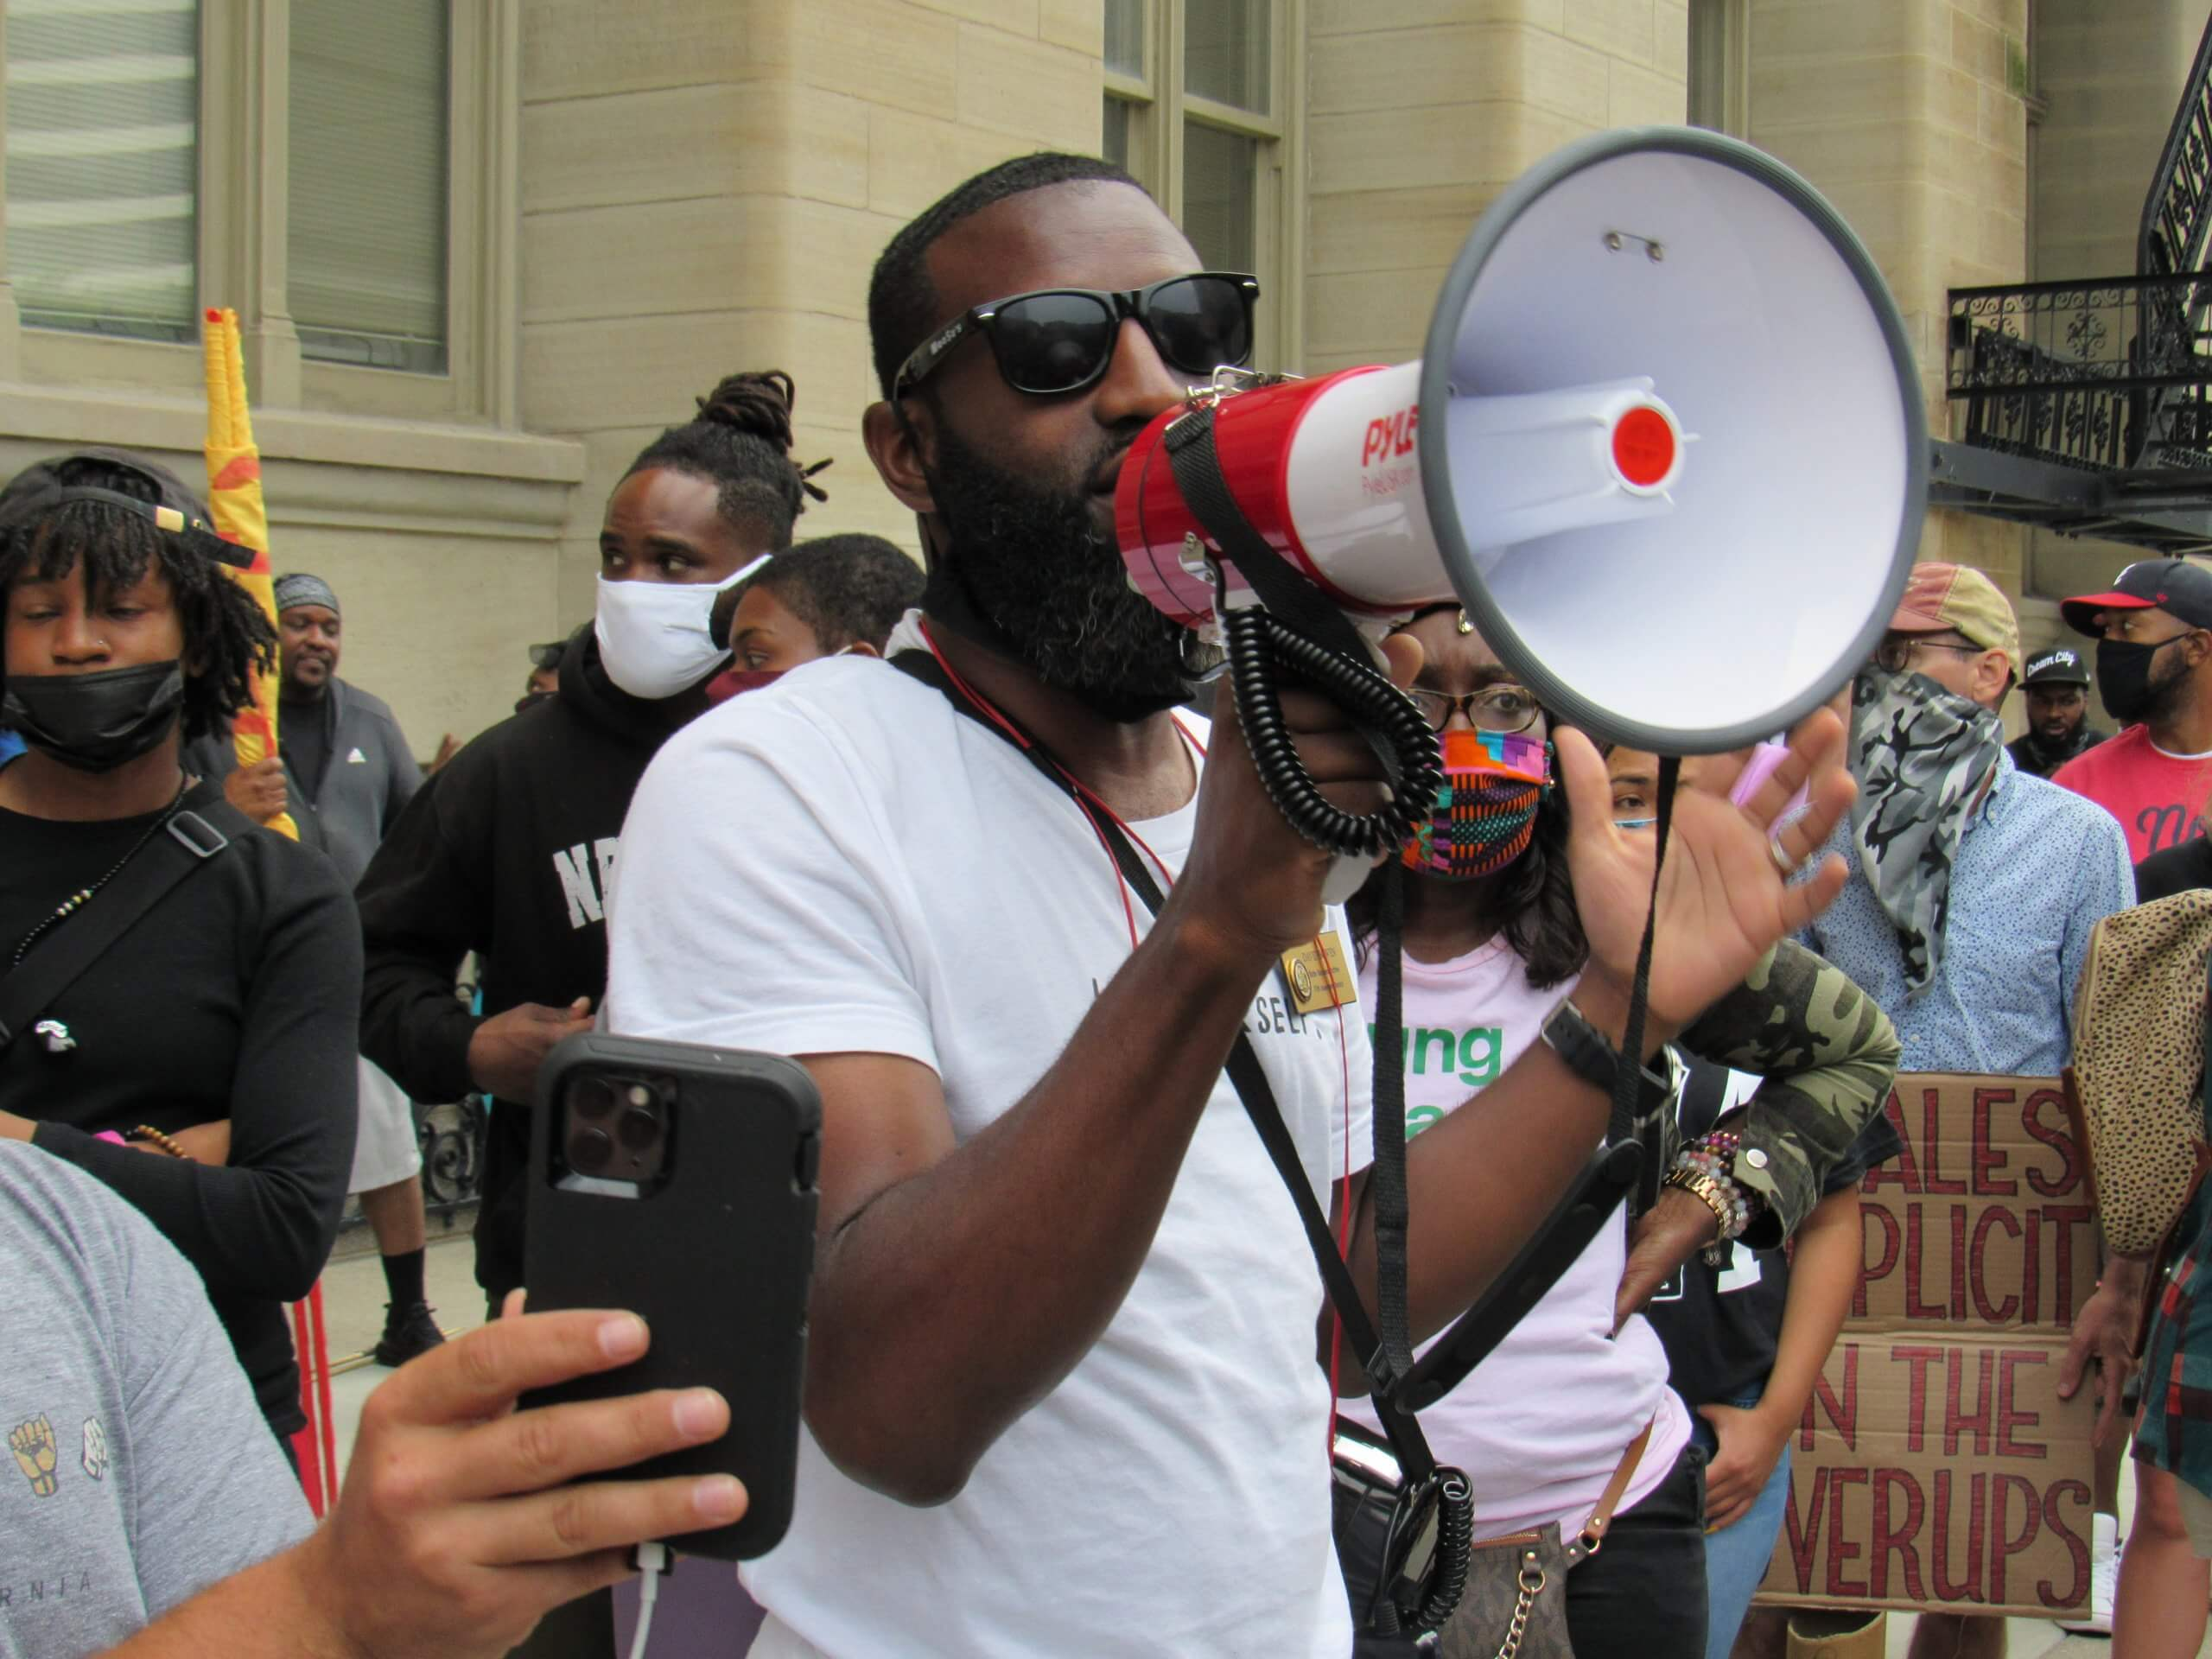 Rep. David Bowen speaks to the crowd gathered in front of Milwaukee's city hall. (Photo by Isiah Holmes)